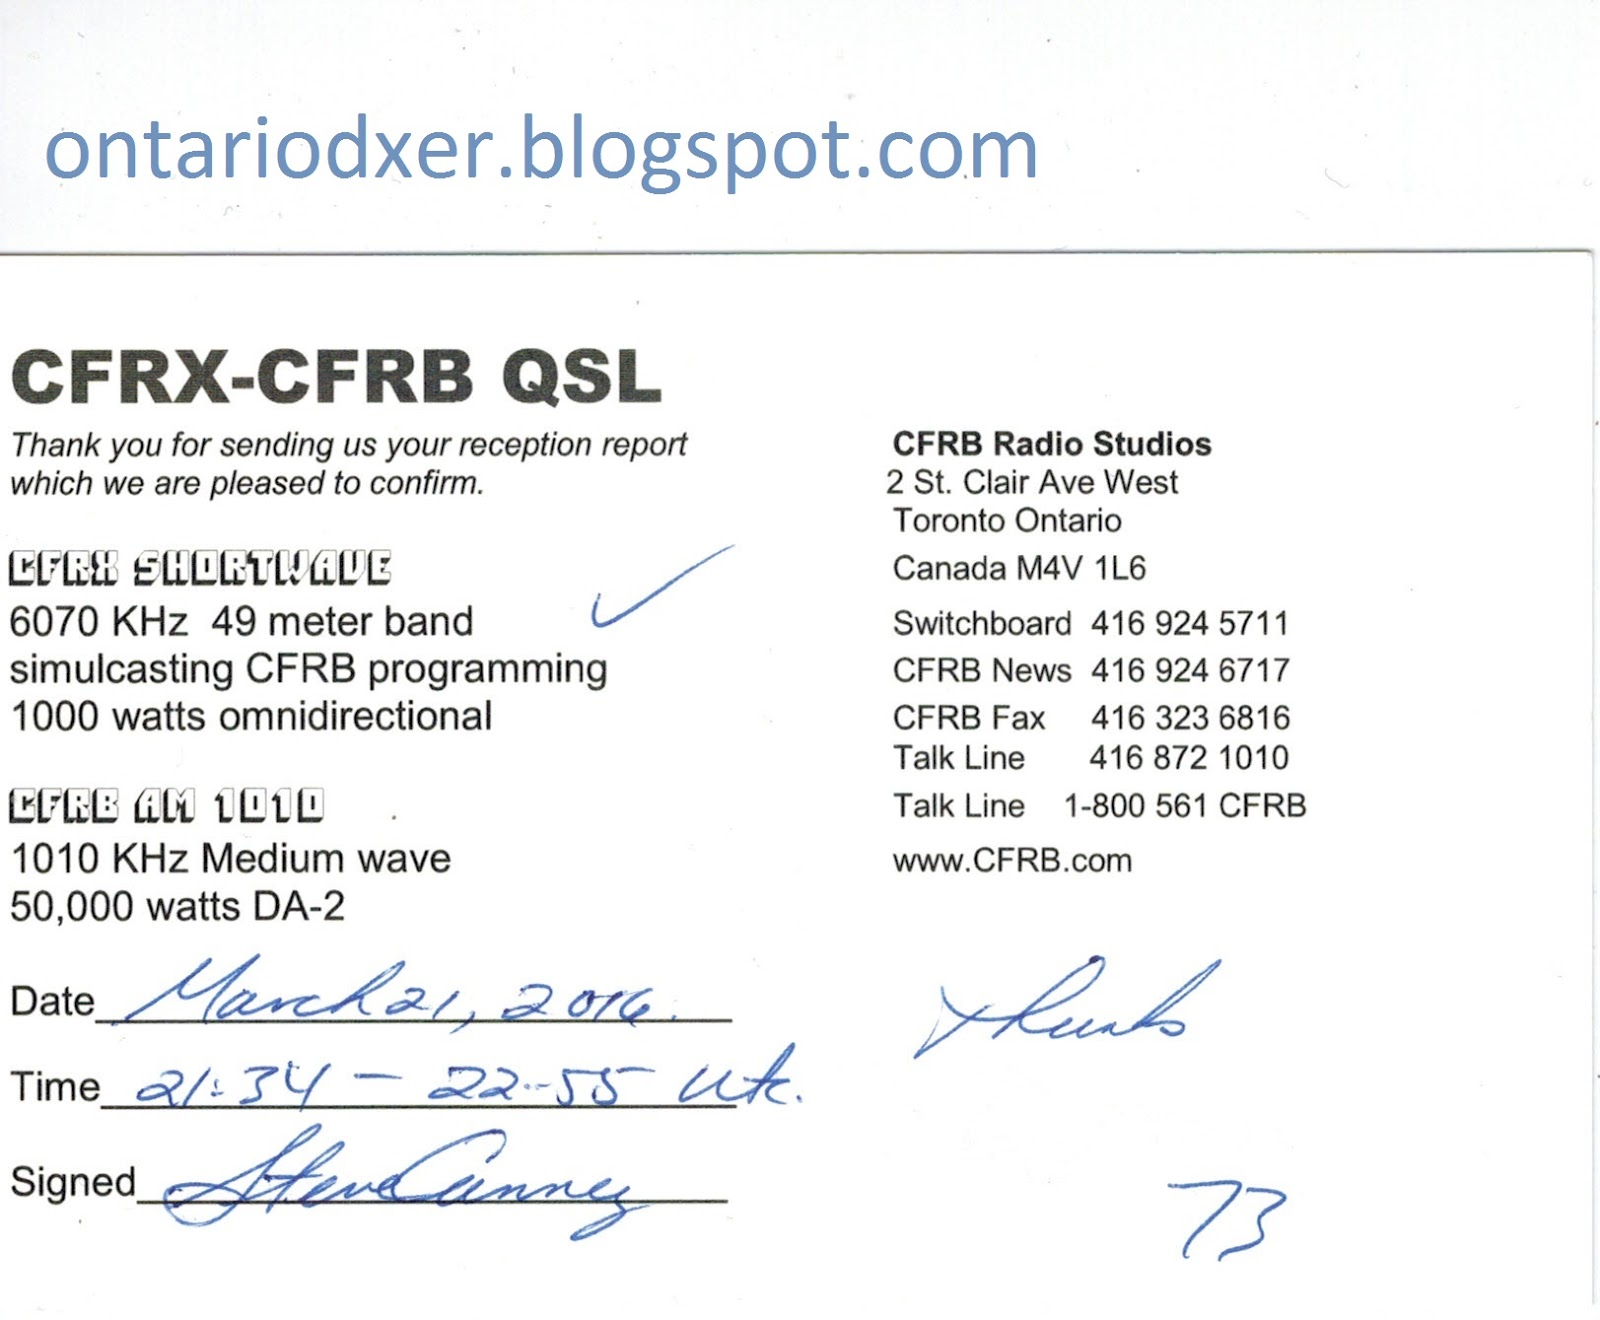 Thanks To Steve Who Is The QSL Manager At CFRB 1010 CFRX